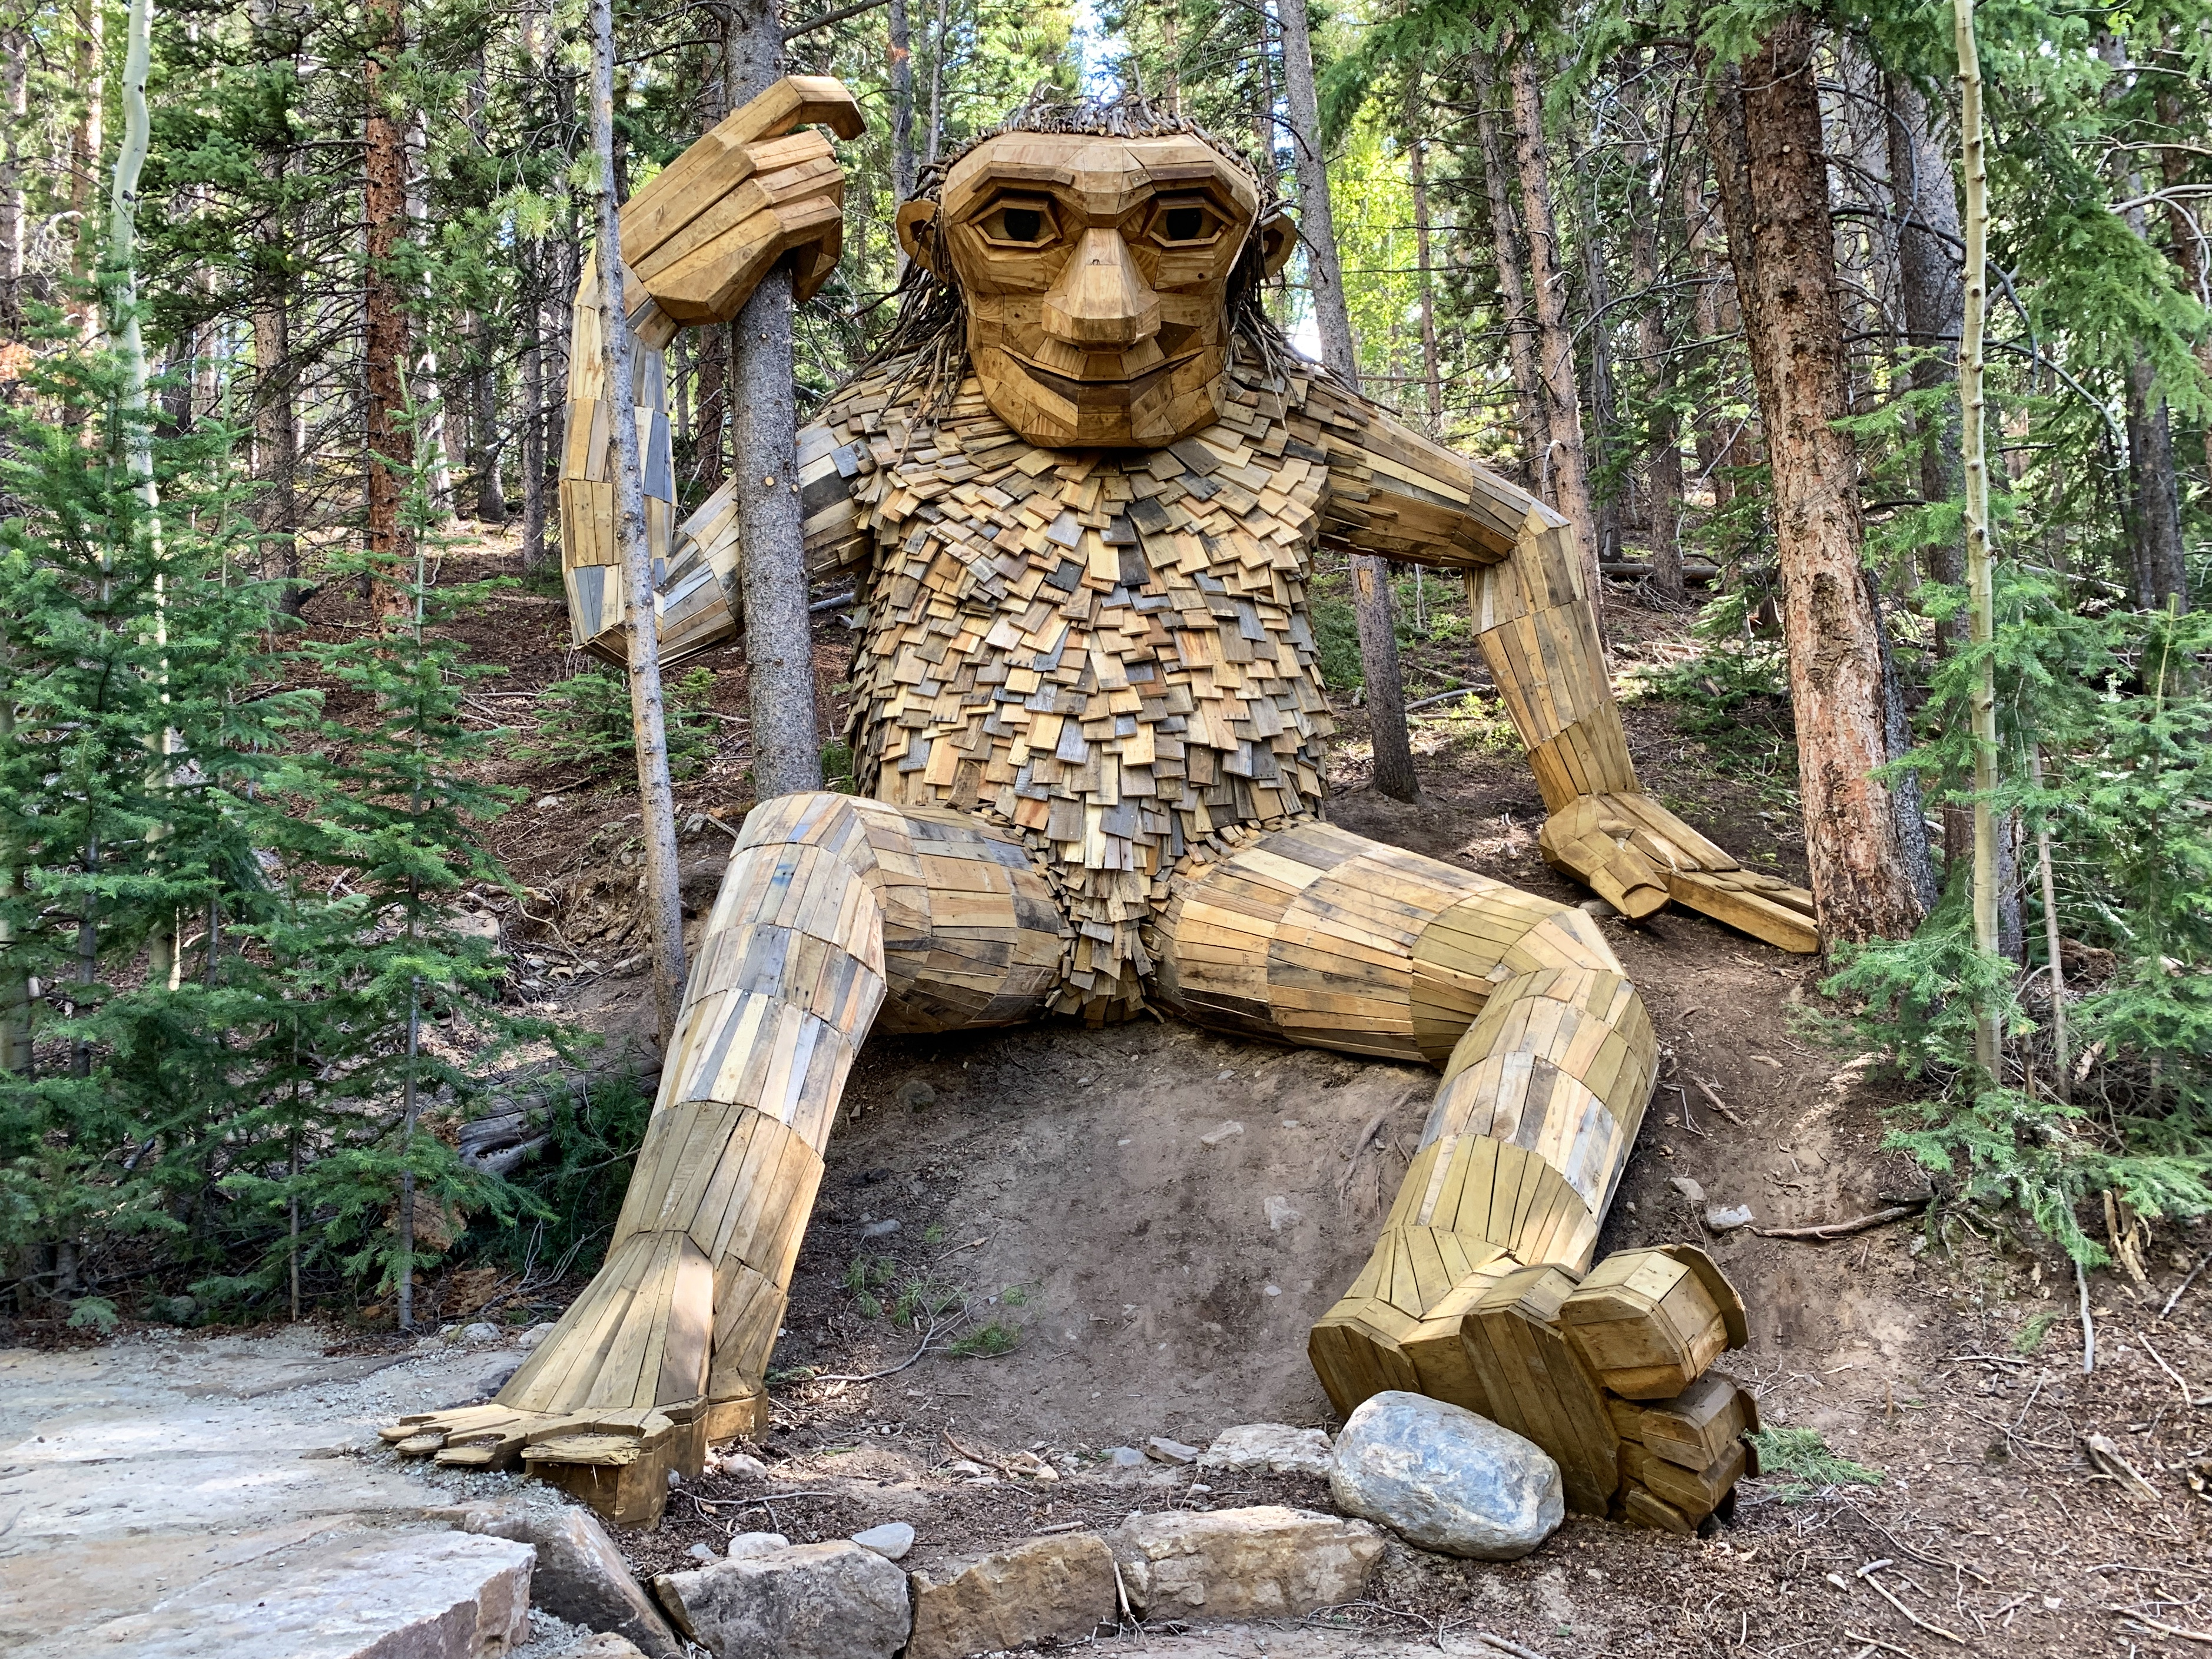 Breckenridge Troll has a New Home - Swept Away Today